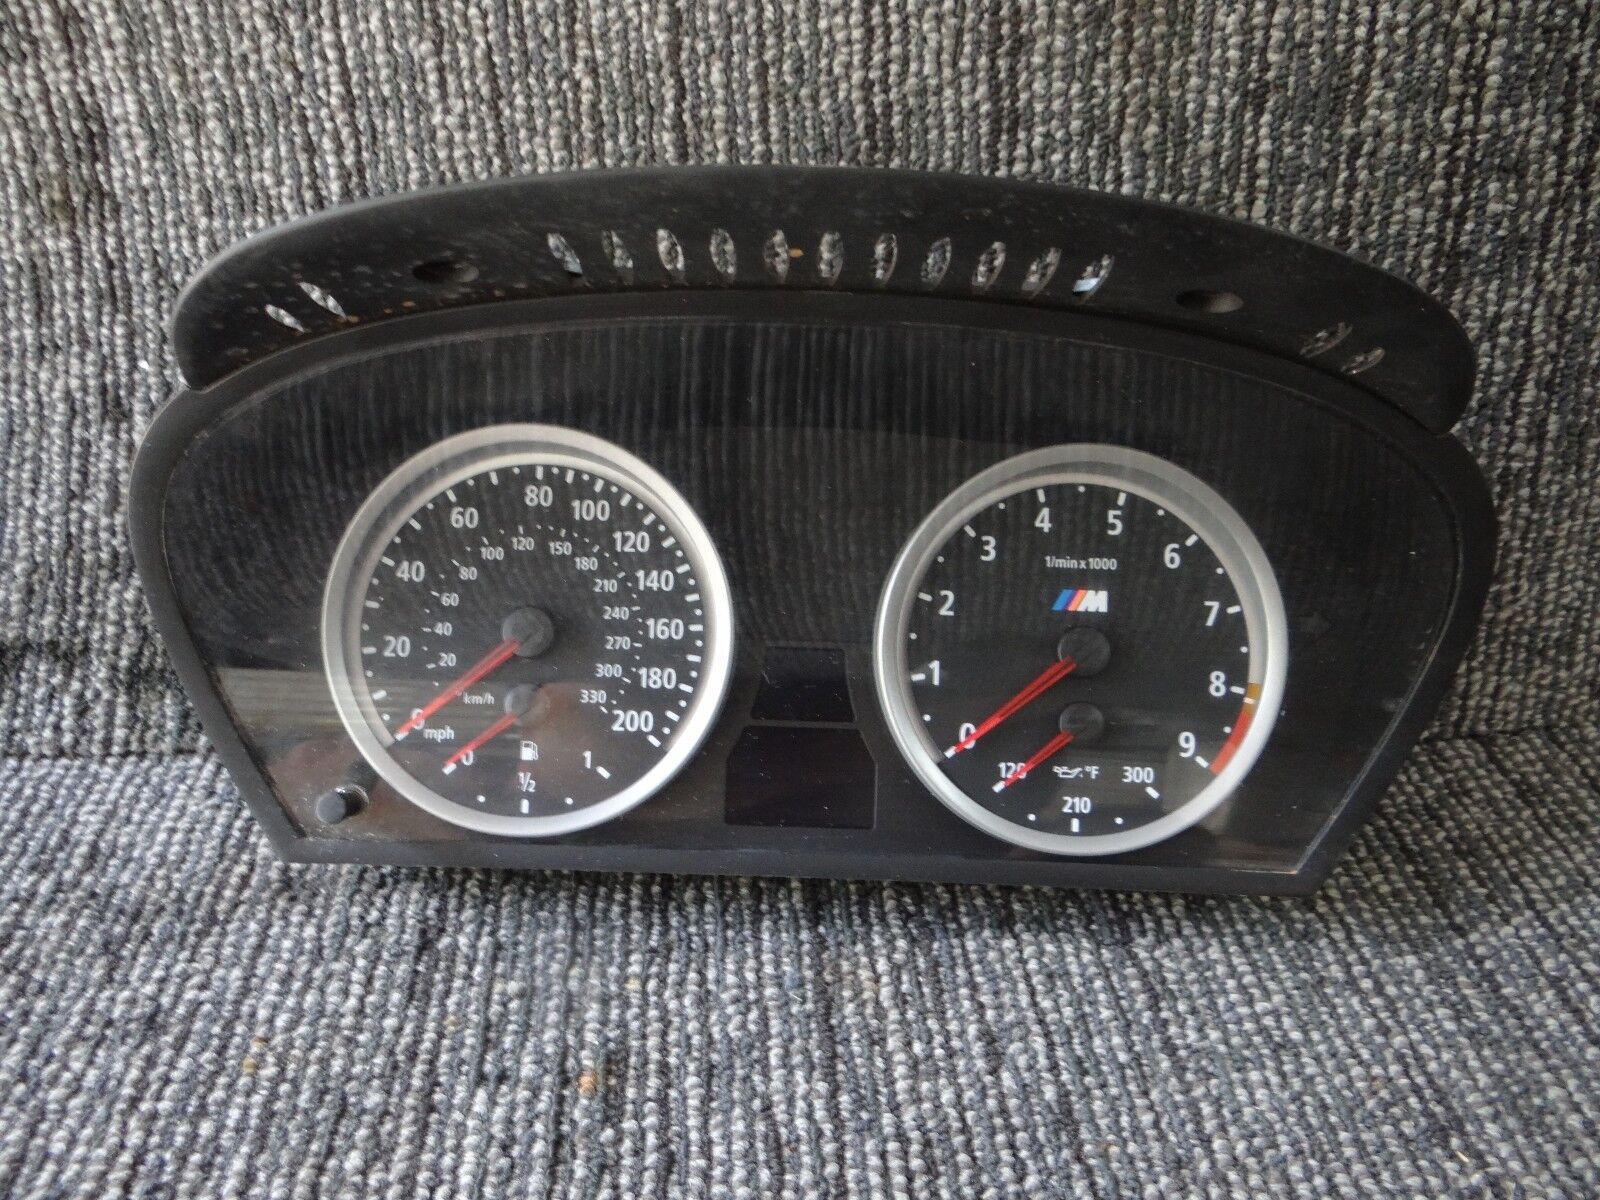 Used Bmw M6 Engine Computers For Sale 2014 Fuse Box Cl1874 2006 2010 M4 M5 Speedometer Cluster 36k 6211 7 837 868